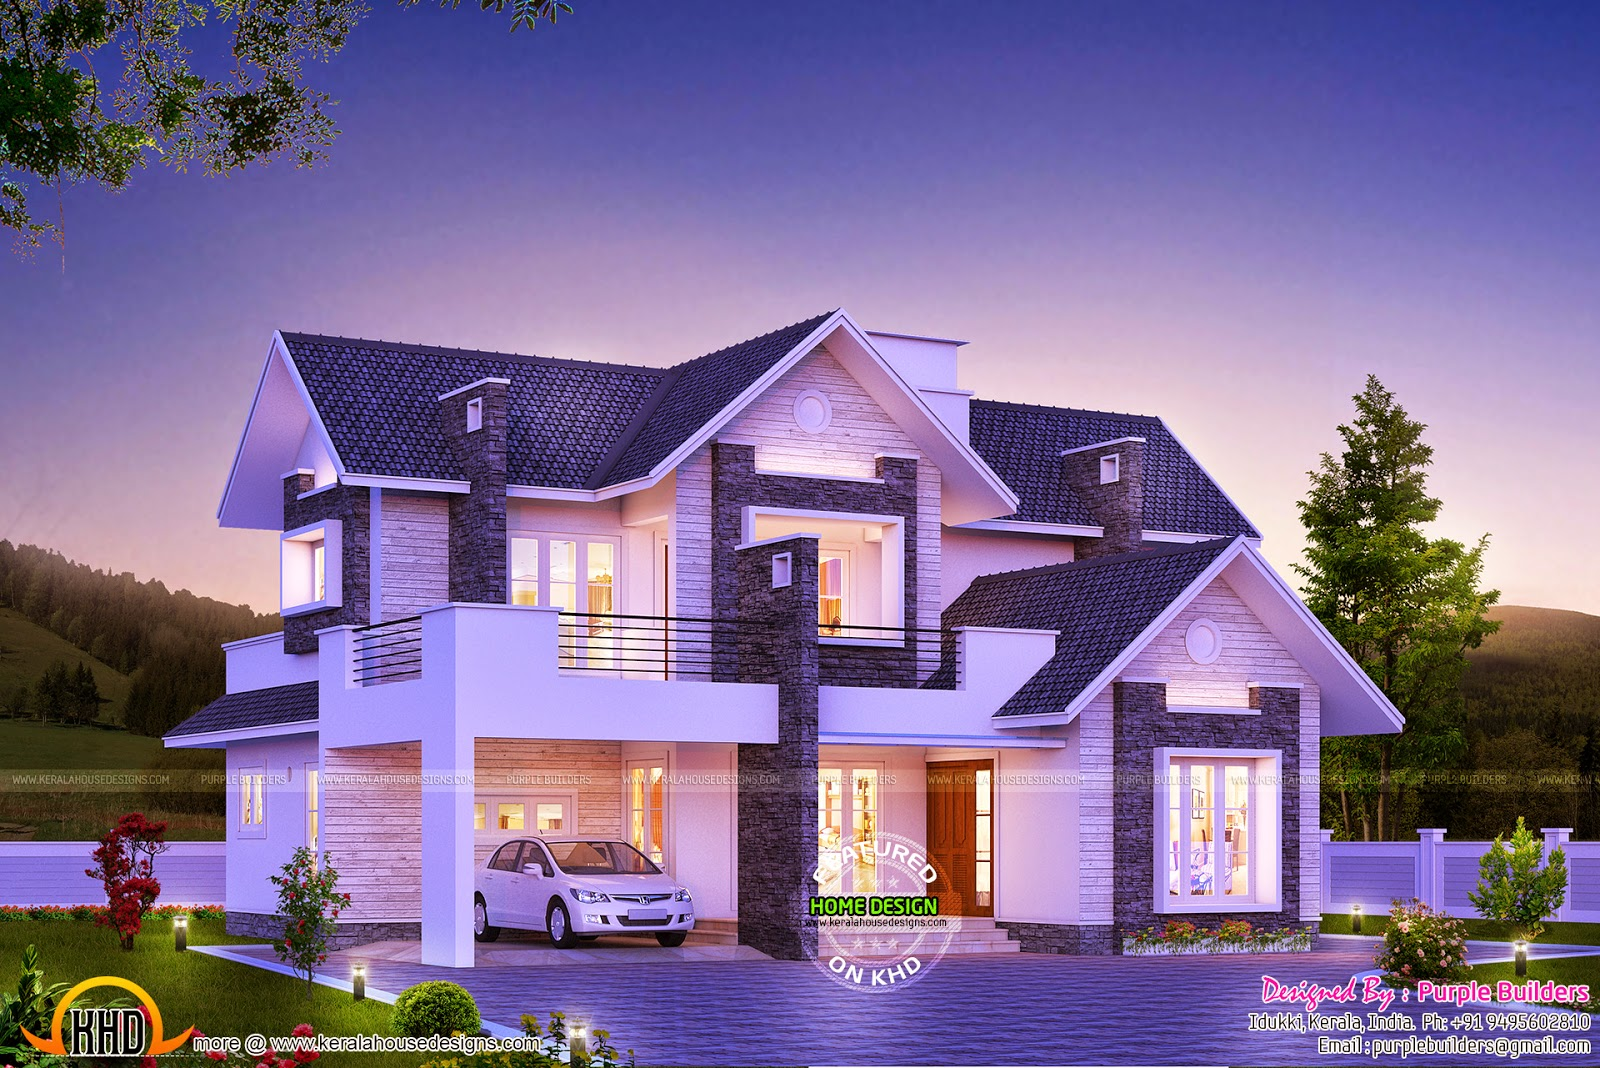 Super dream home kerala home design and floor plans for Home builders house plans